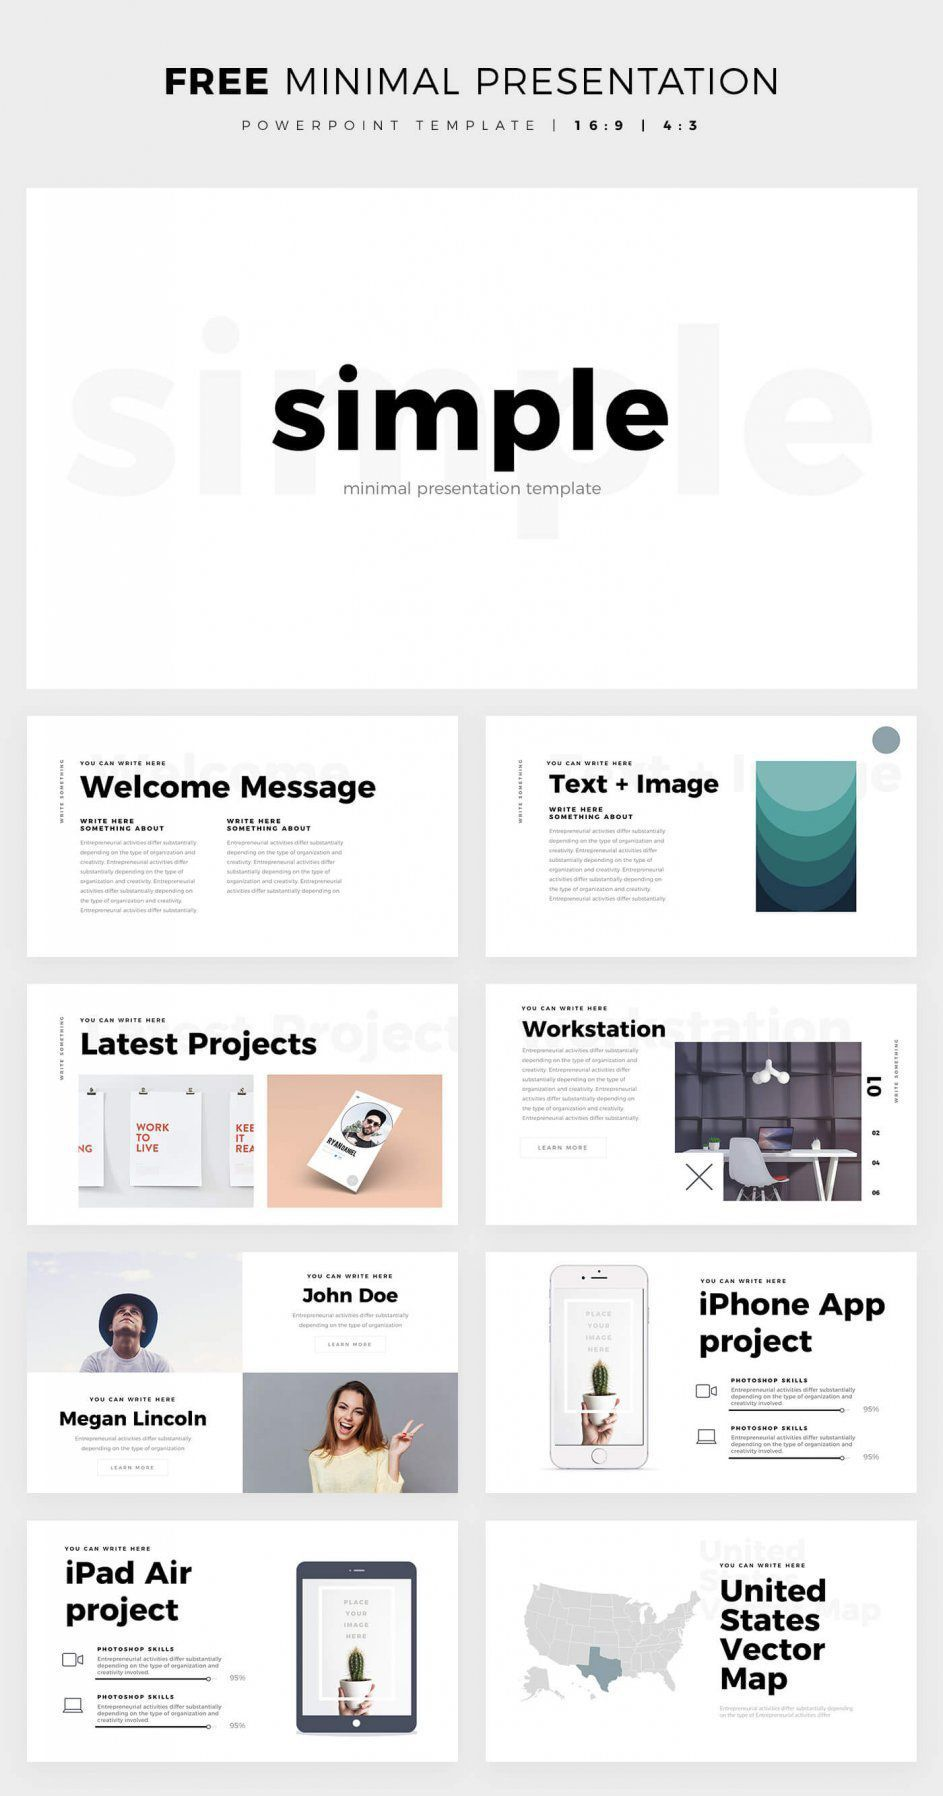 The Enchanting Simple And Clean Powerpoint Template Free Ppt Theme Inside P Powerpoint Slide Designs Cool Powerpoint Templates Powerpoint Presentation Design